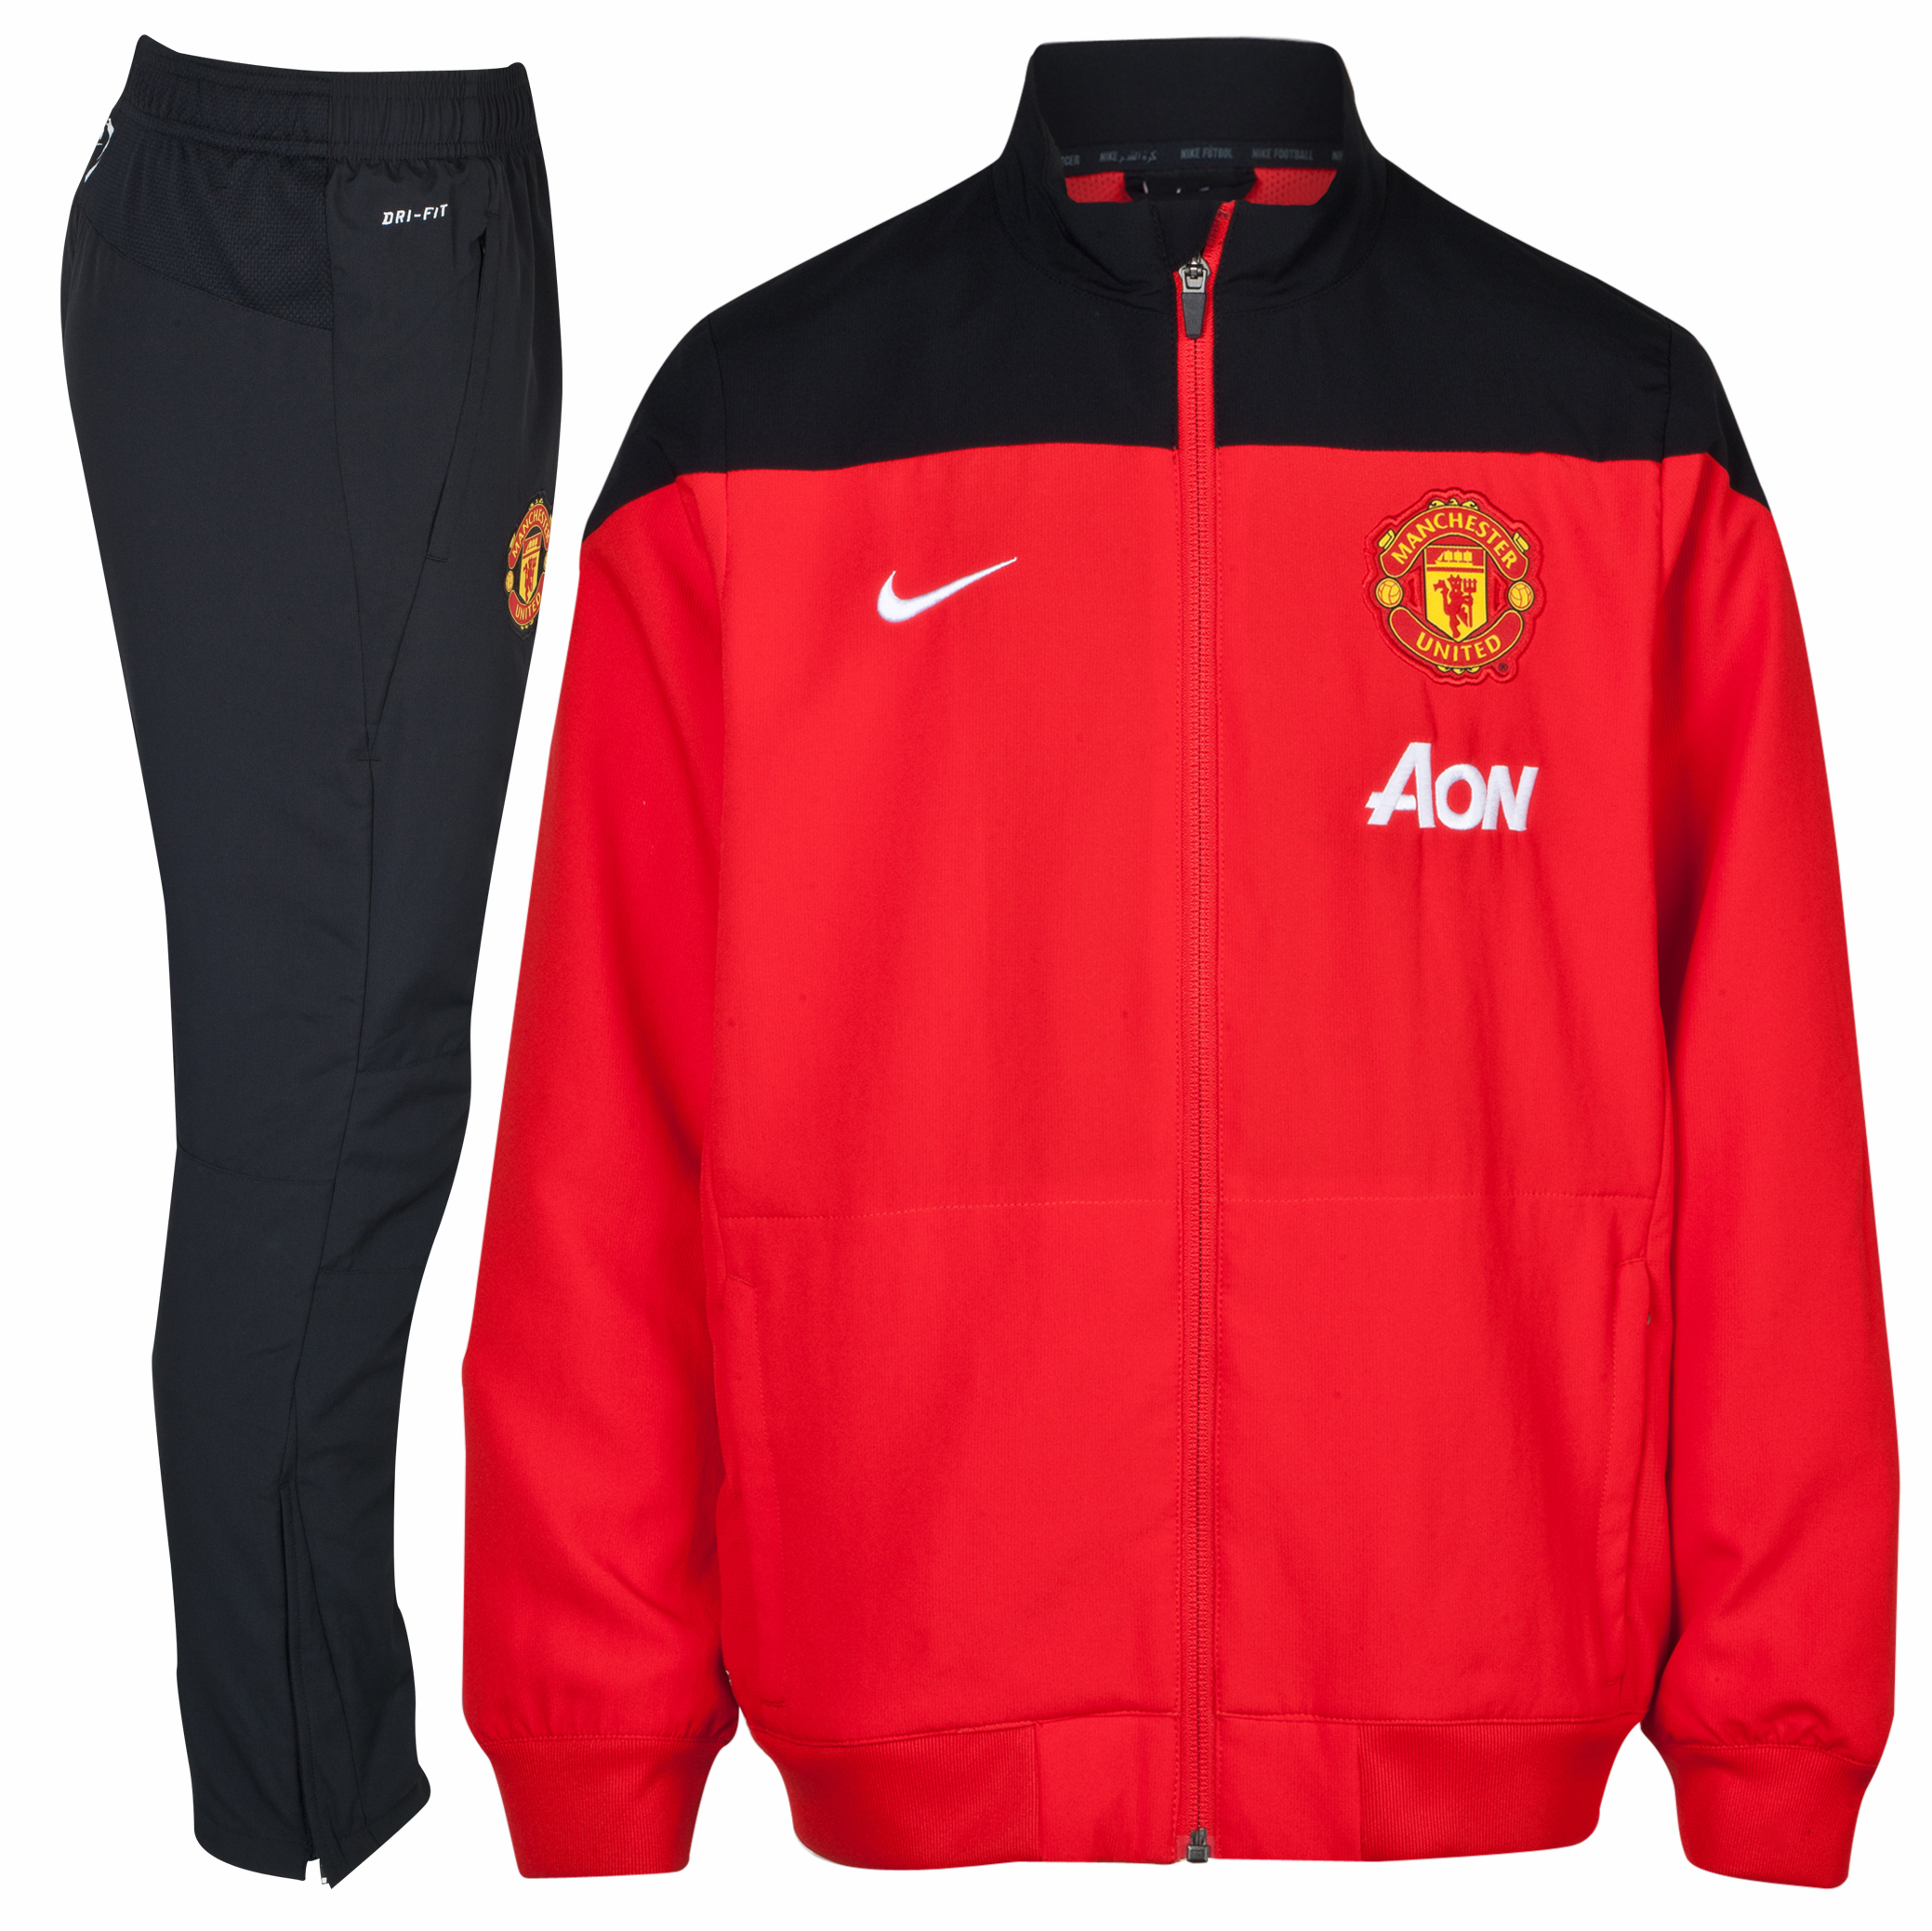 Manchester United Squad Woven Warm Up Tracksuit - Challenge Red/Black/White - Kids Red